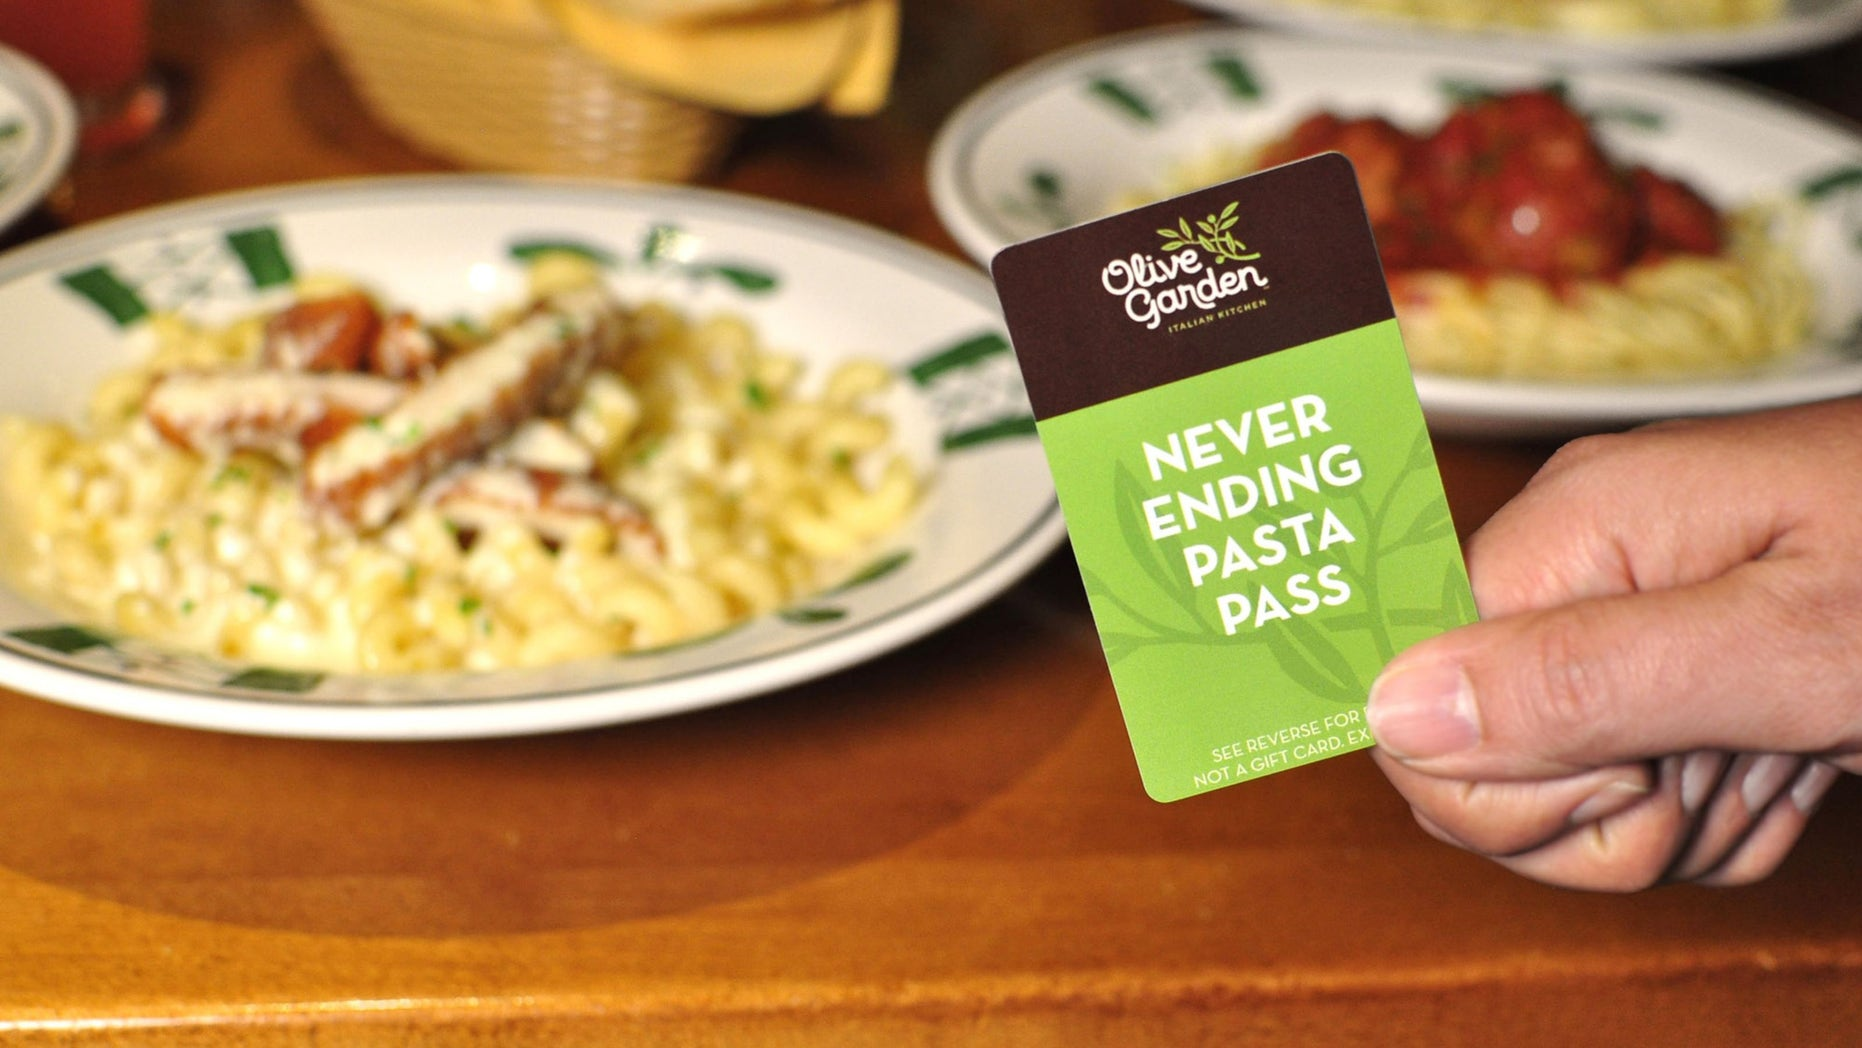 After Olive Garden's Never Ending Pasta Pass began selling on third-party websites, such as Ebay, the company said the black market versions wouldn't be accepted at restaurants.